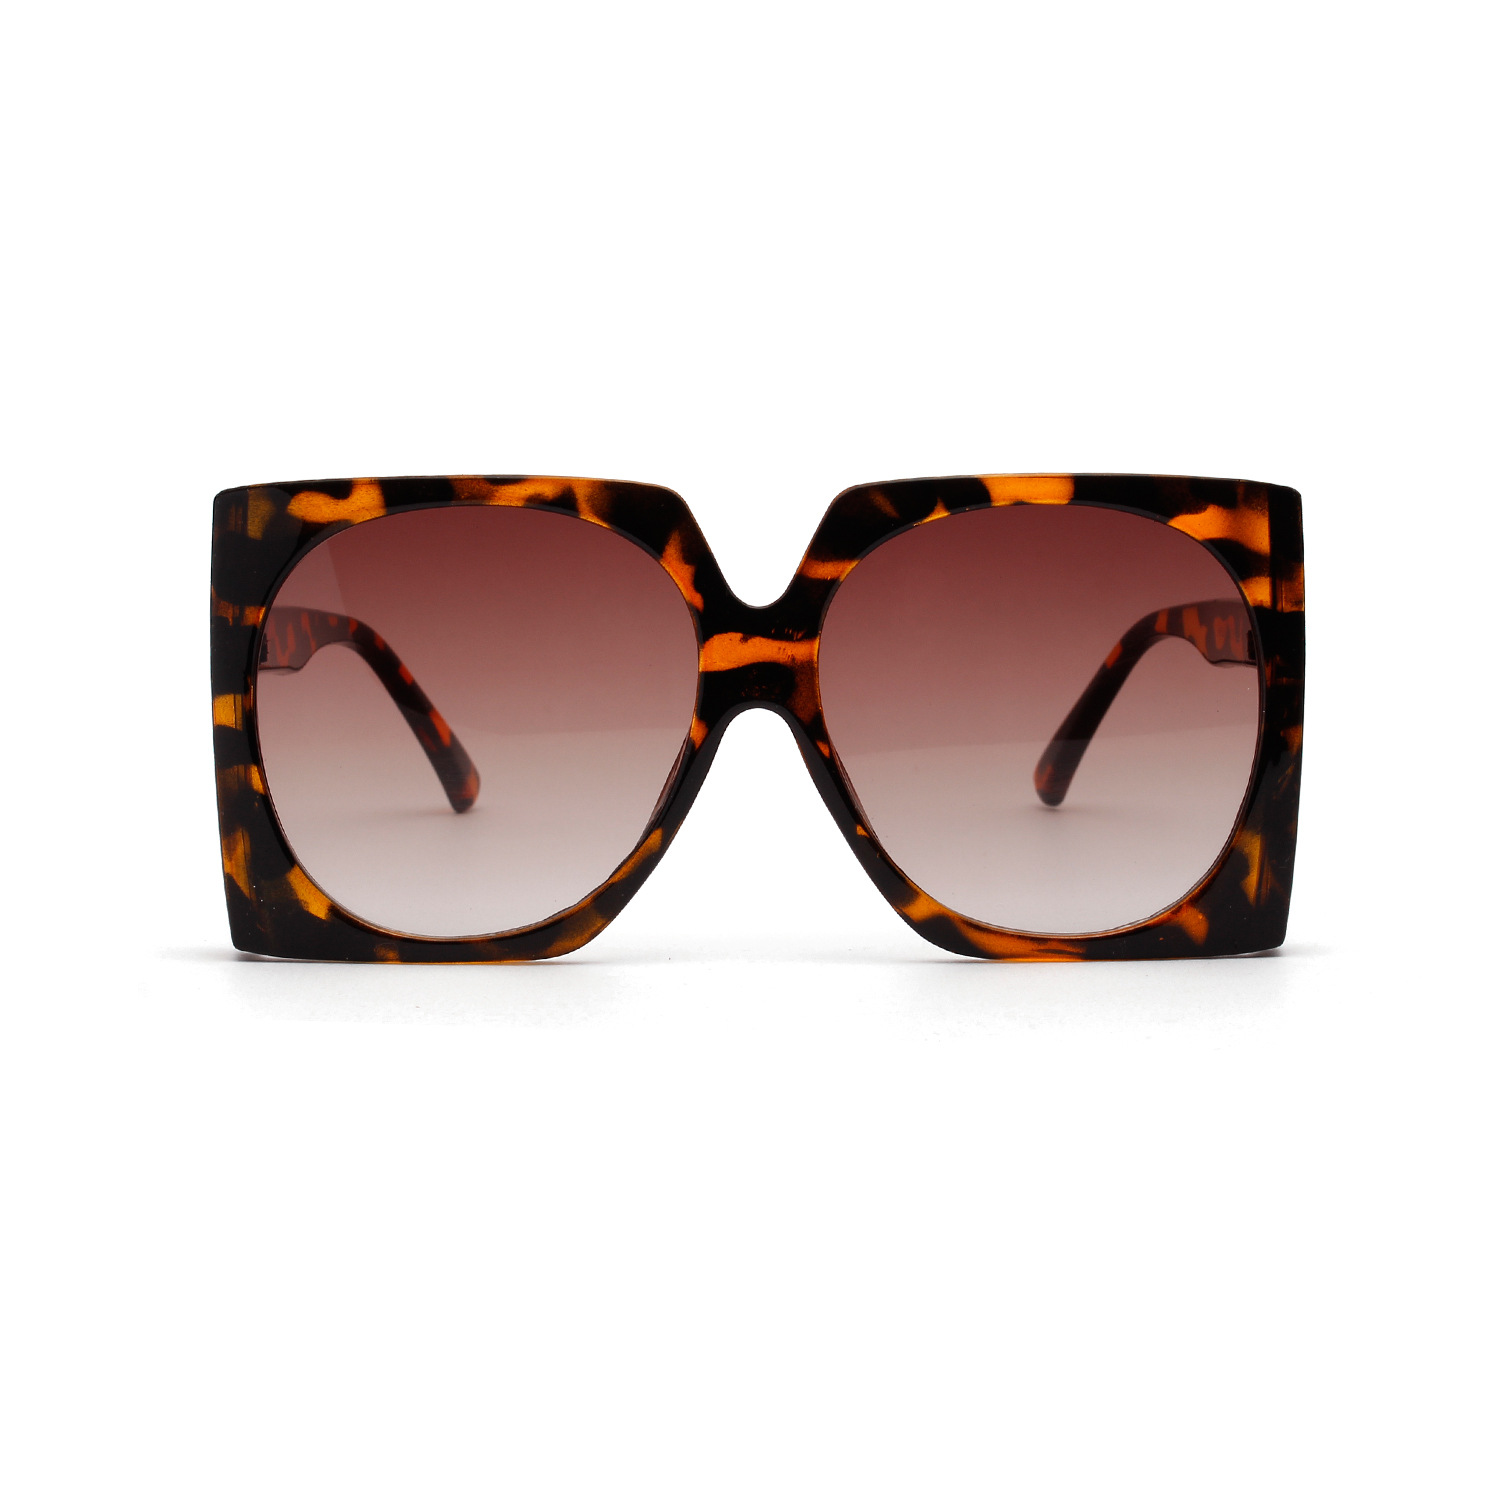 WENZHE New Arrival Fashion Square Shaped Frames Oversized Leopard Women Sunglasses Featured Image